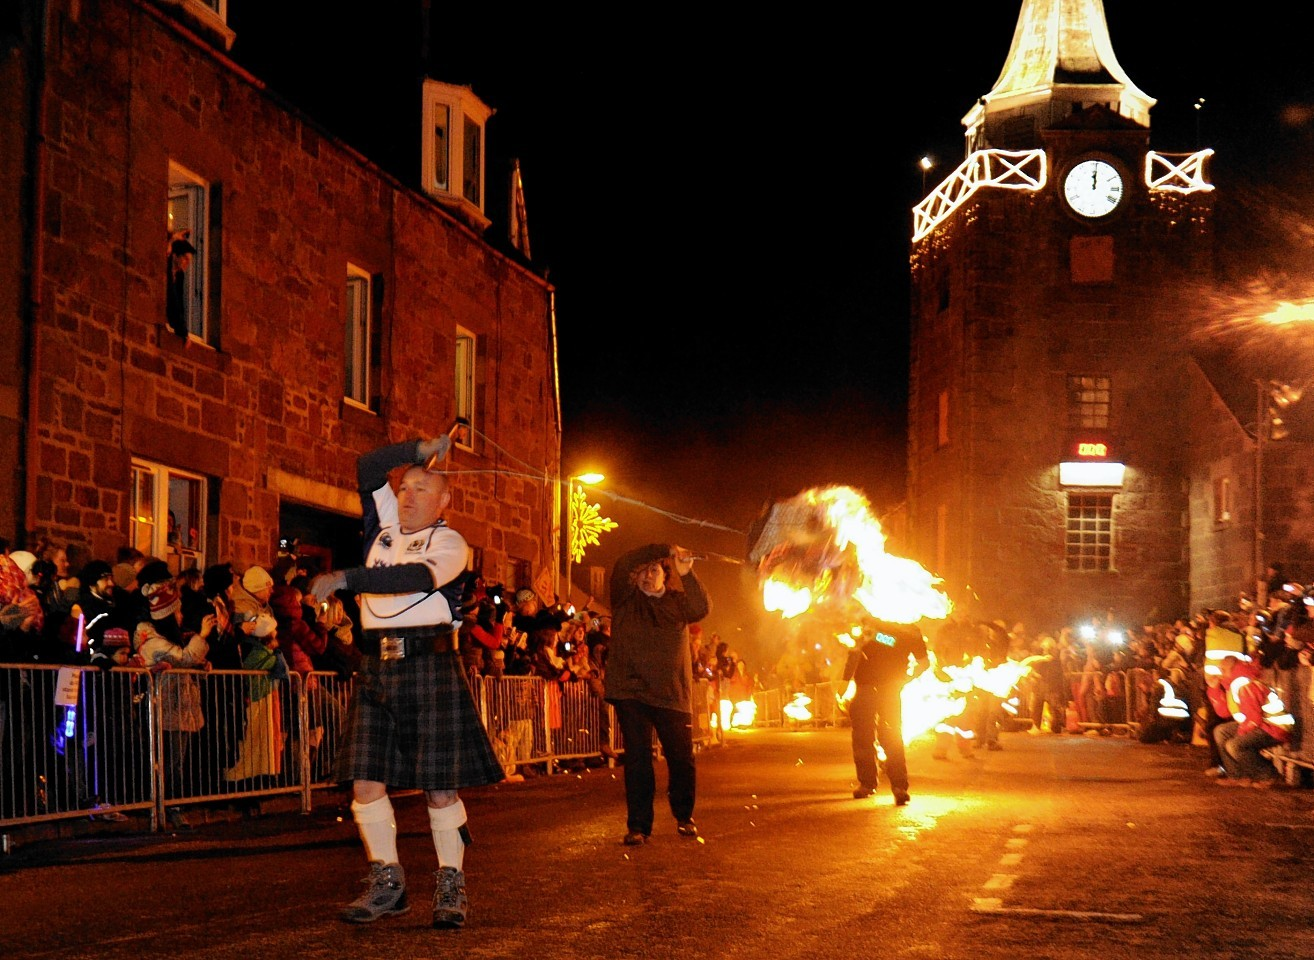 Revelers bring in 2015 in Stonehaven. Photo by Colin Rennie